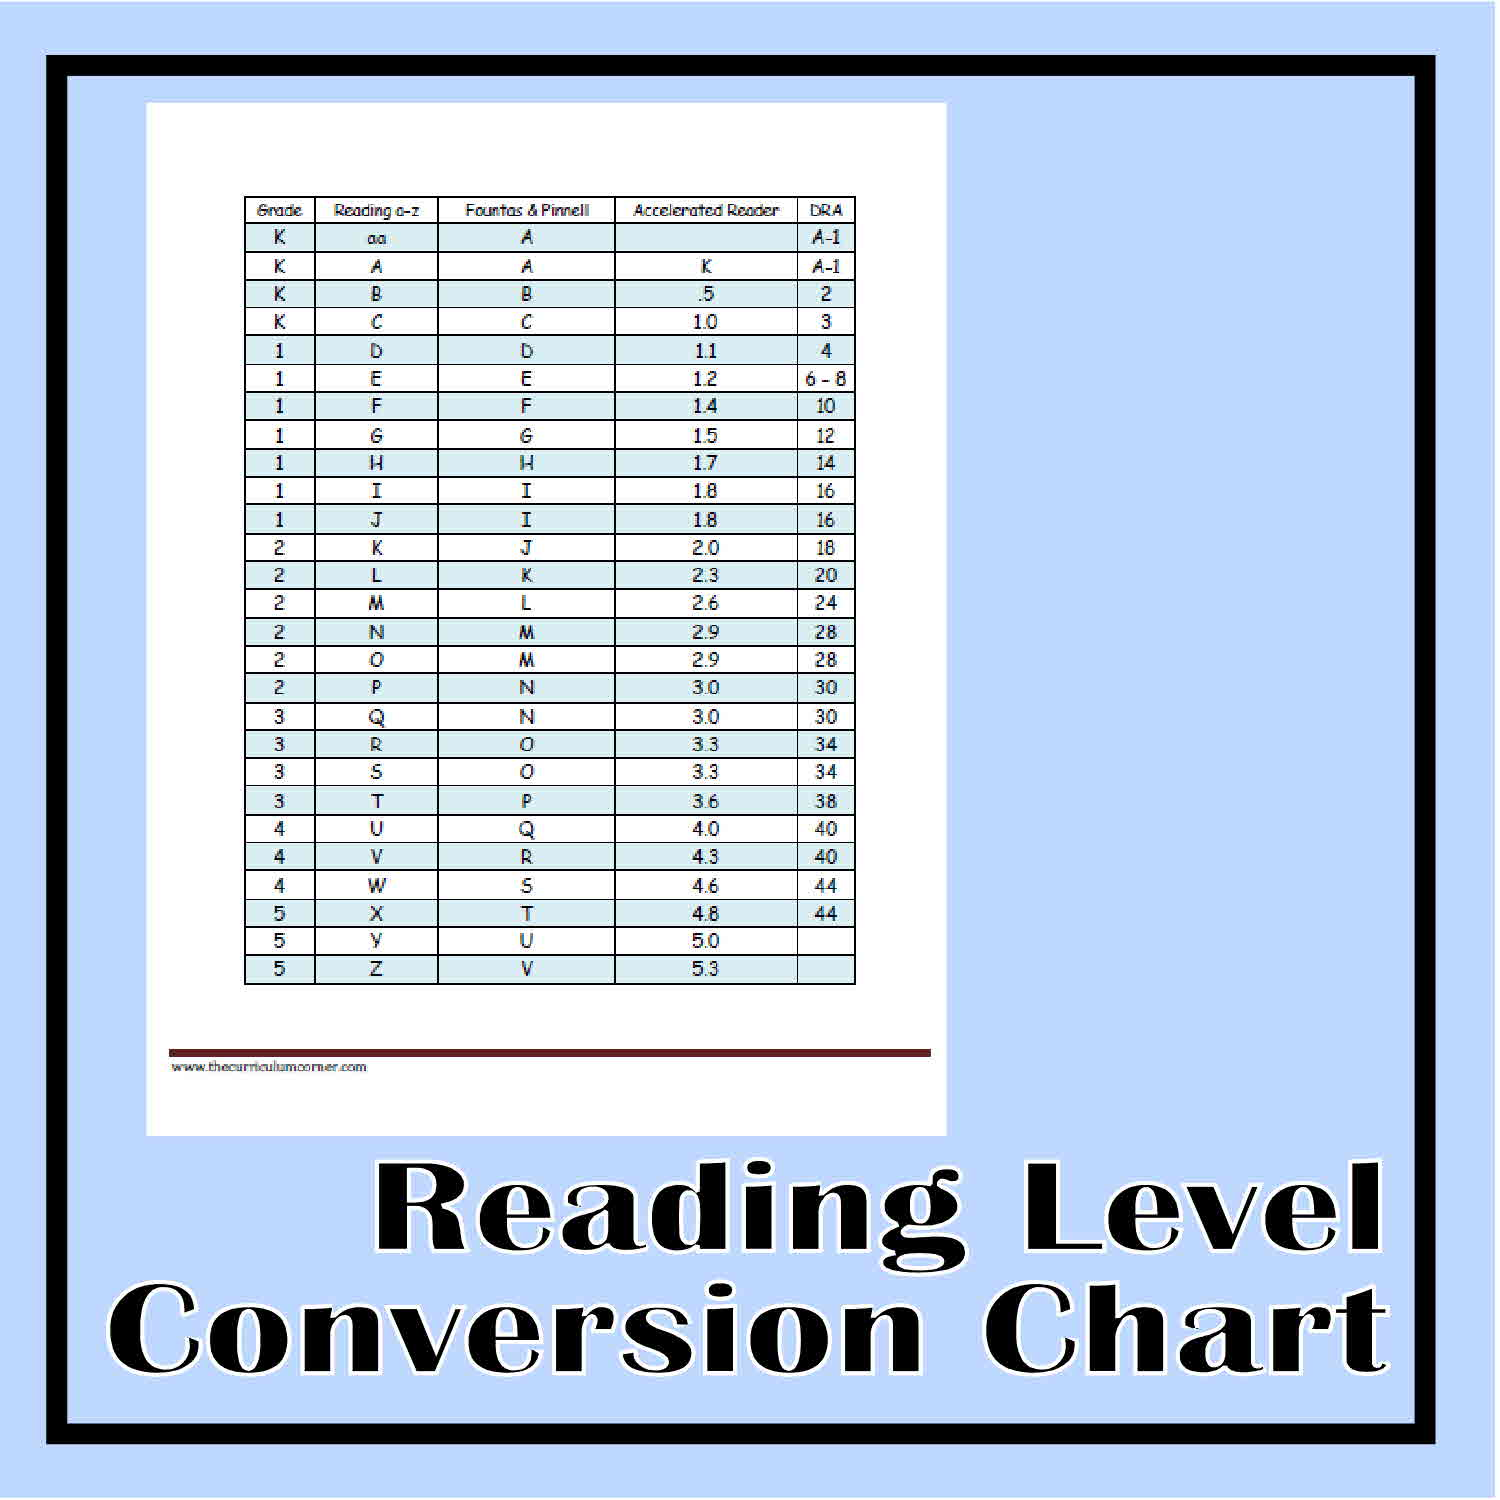 Reading level conversion chart the curriculum corner 123 reading level conversion chart nvjuhfo Gallery